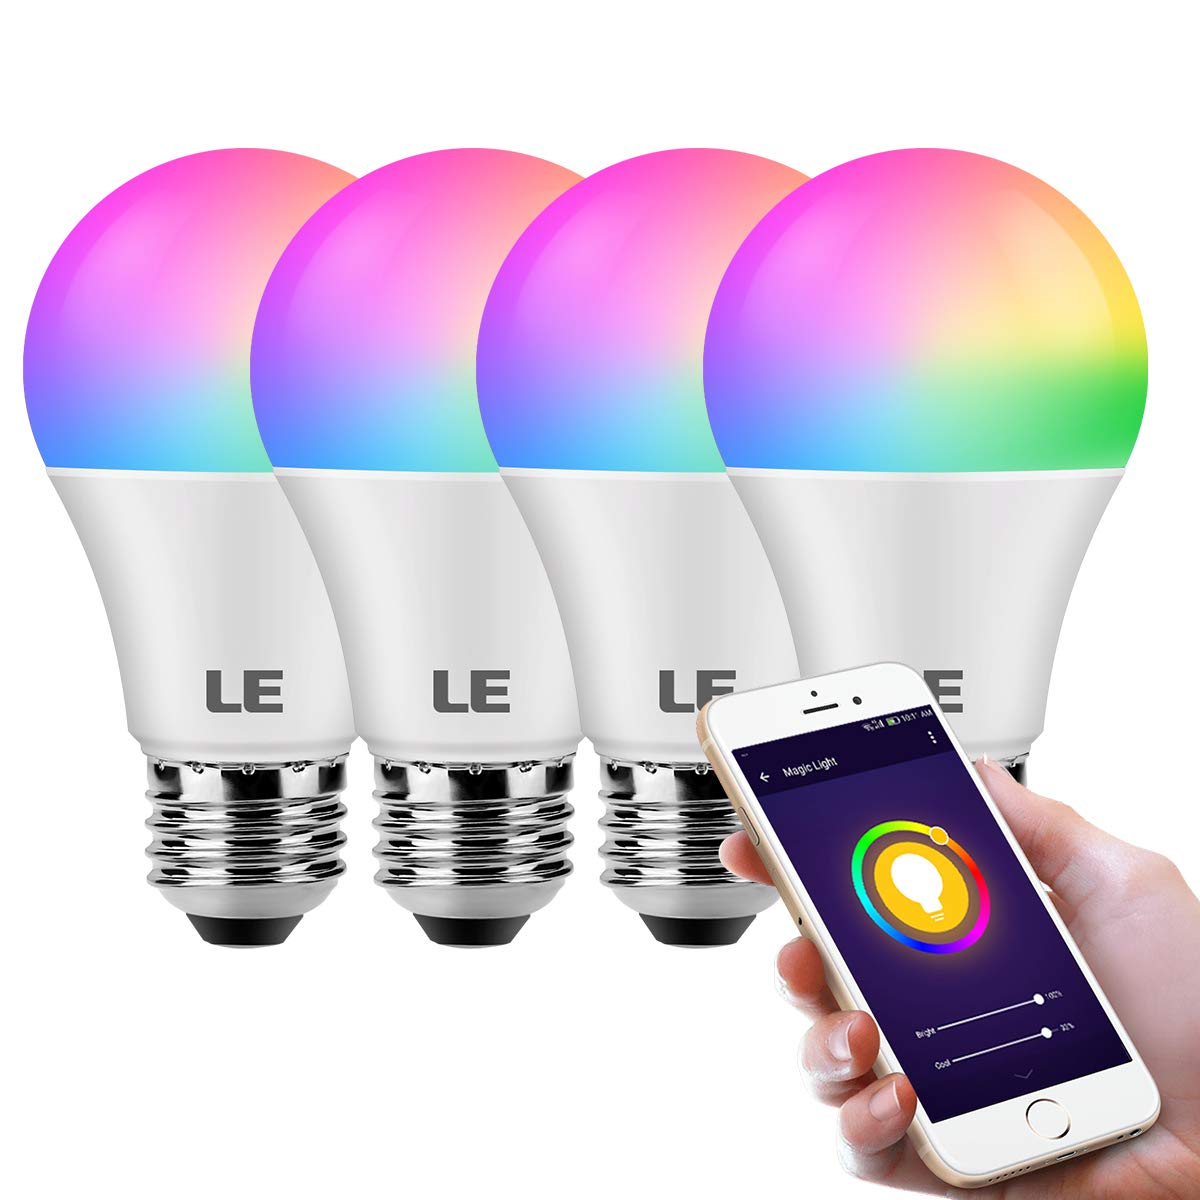 LE WiFi Smart Light Bulbs Works with Alexa, Google Assistant, IFTTT, 2.4G WiFi, RGBCW and CCT (2700-6500K Tunable White), Timer, Color Changing, Dimmable (4 Pack)